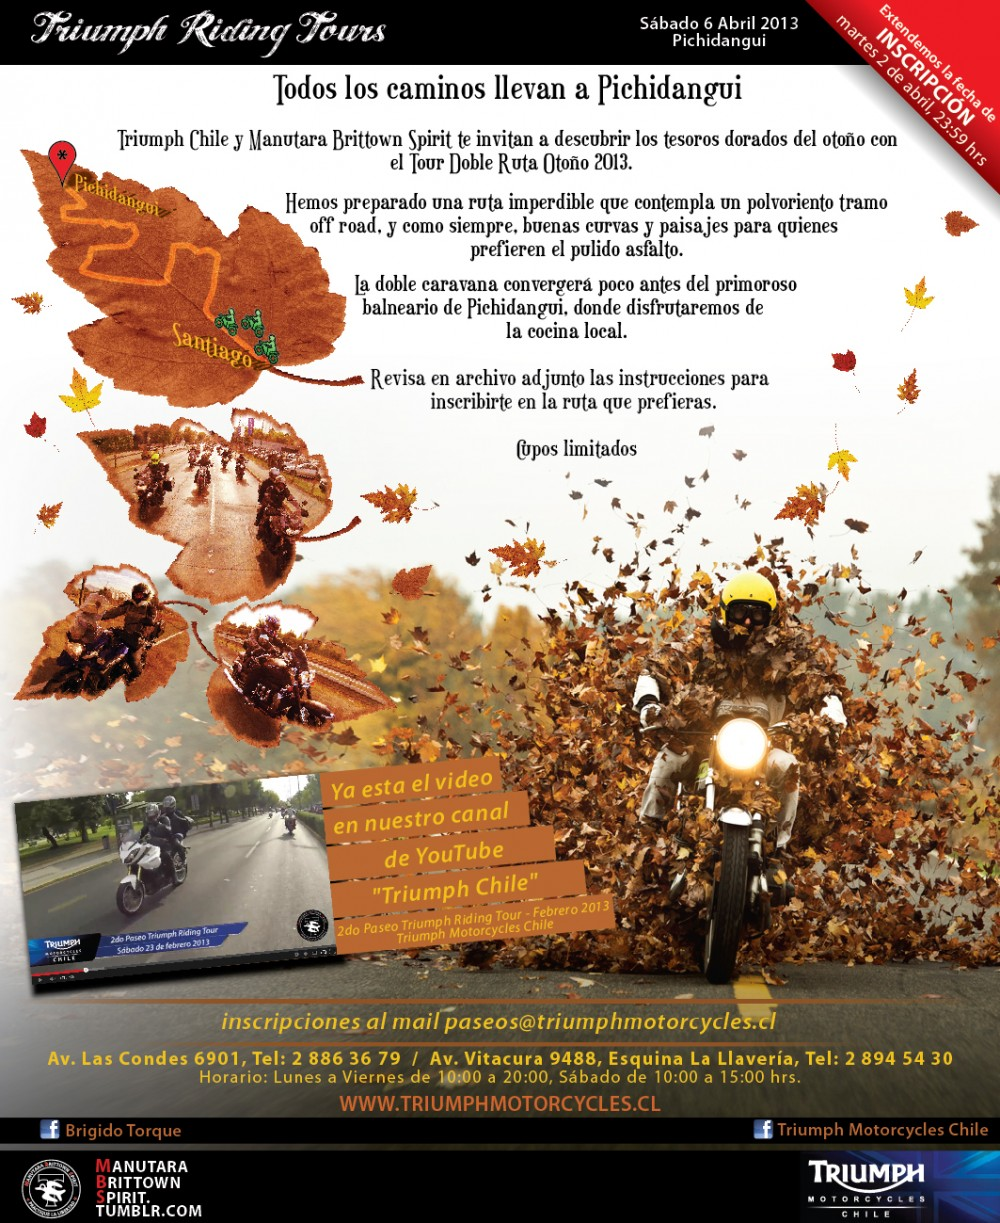 3er Paseo Triumph Riding Tours 2013 - Ruta Doble a Pichidangui